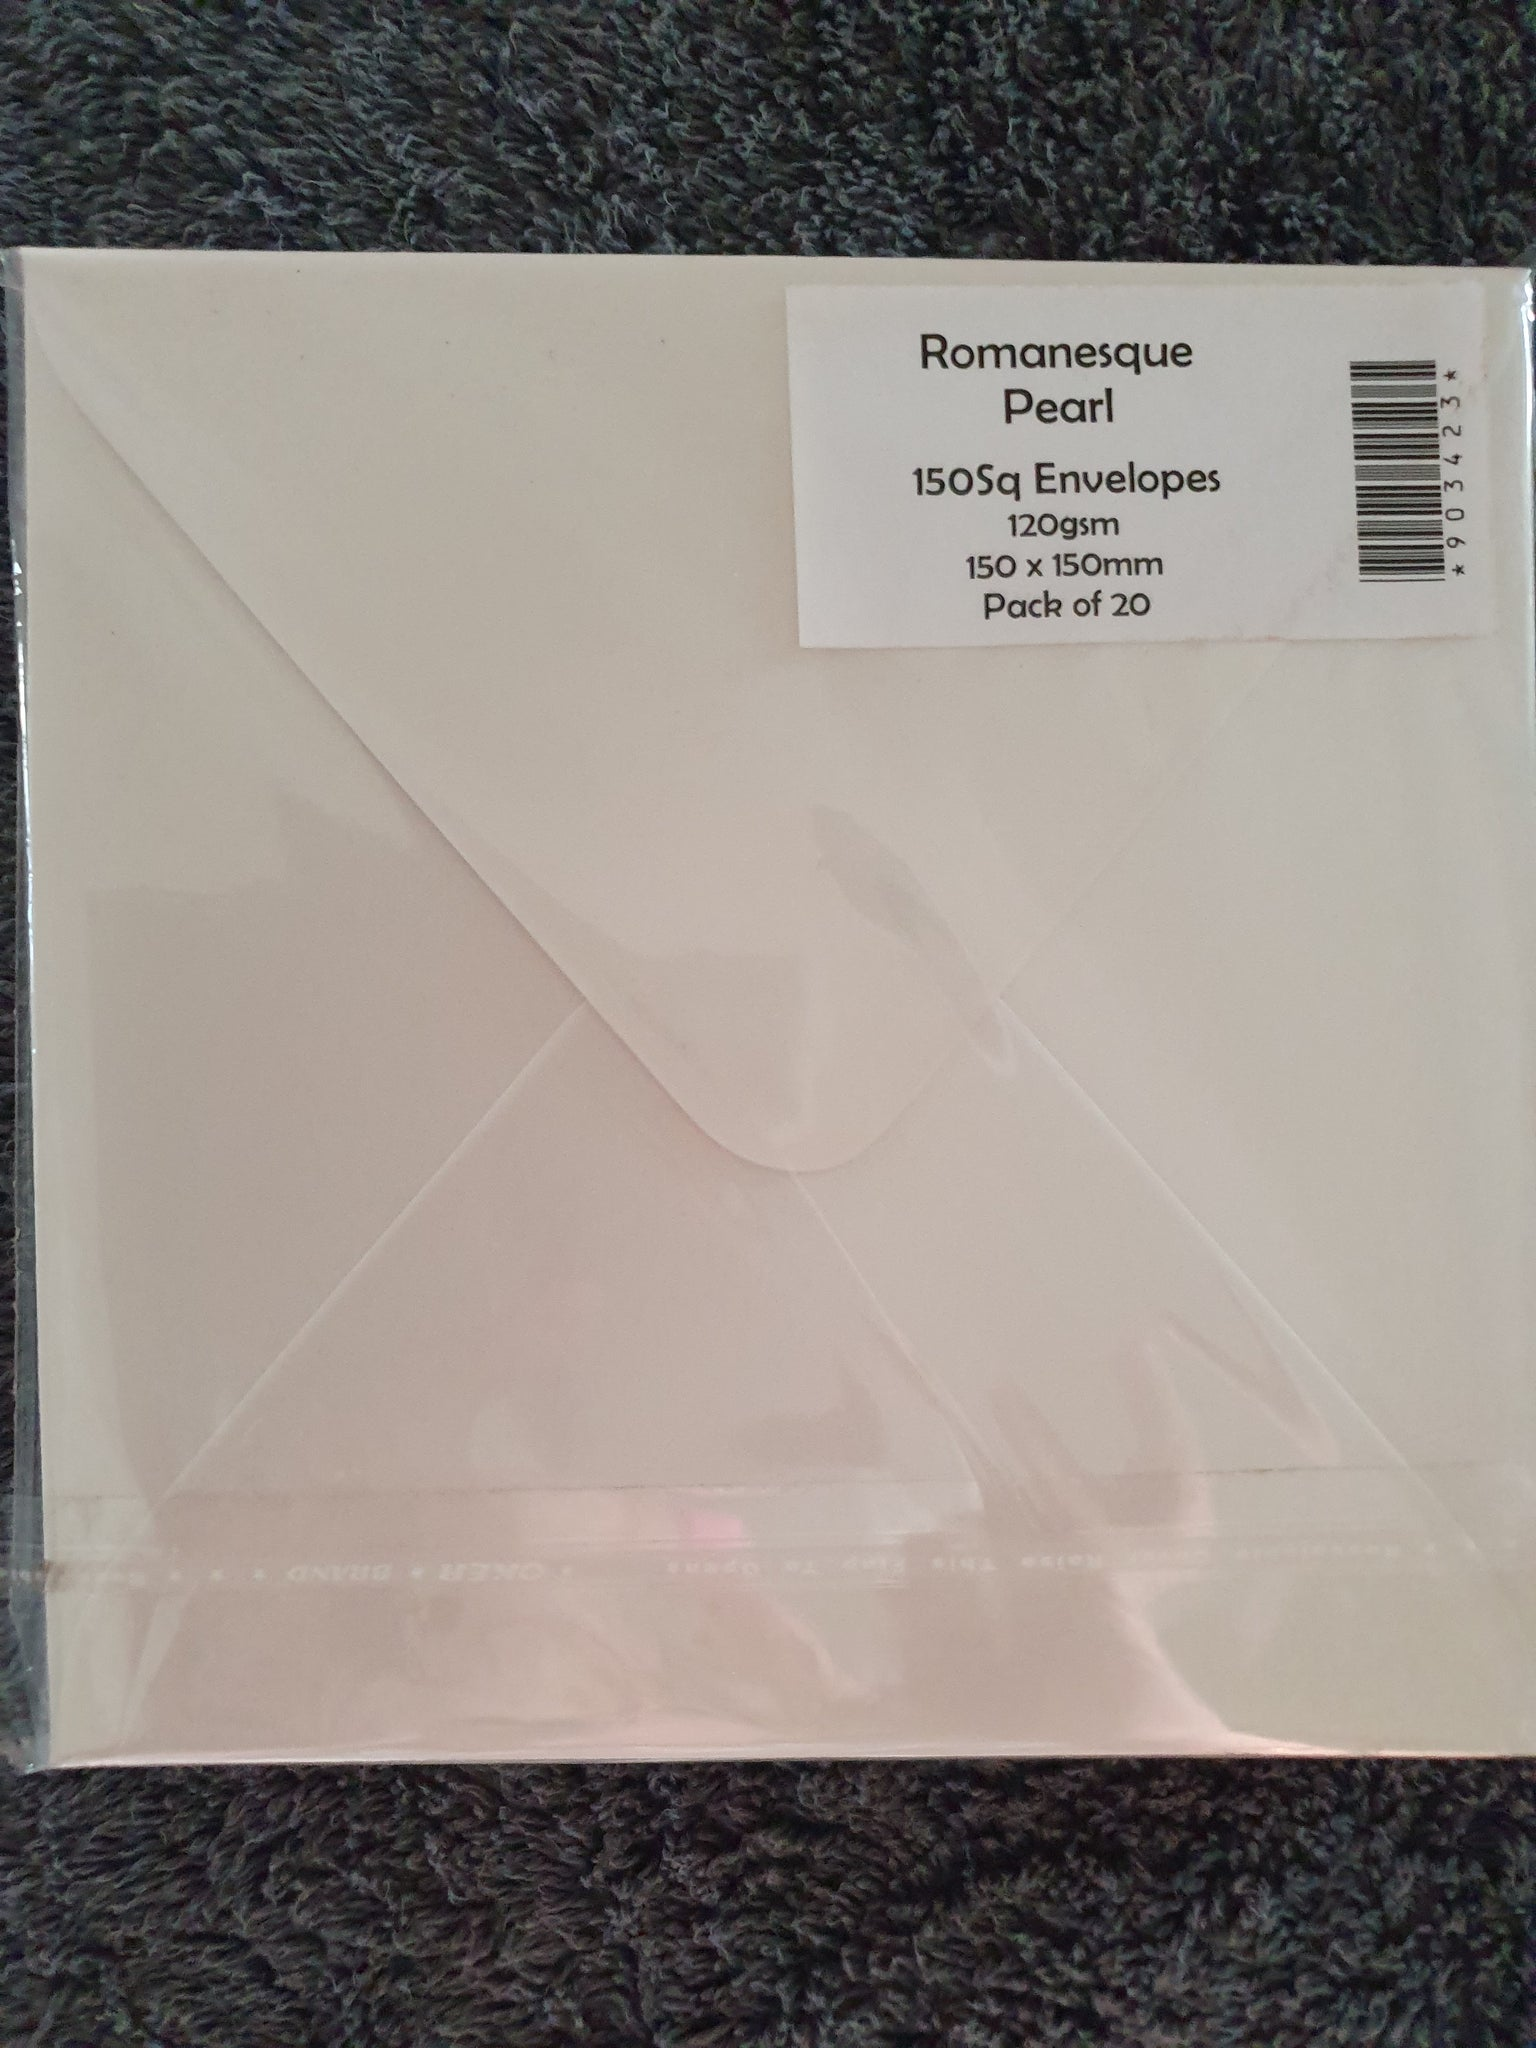 House of Paper 150sq Romanesque Pearl Envelopes  20pkt